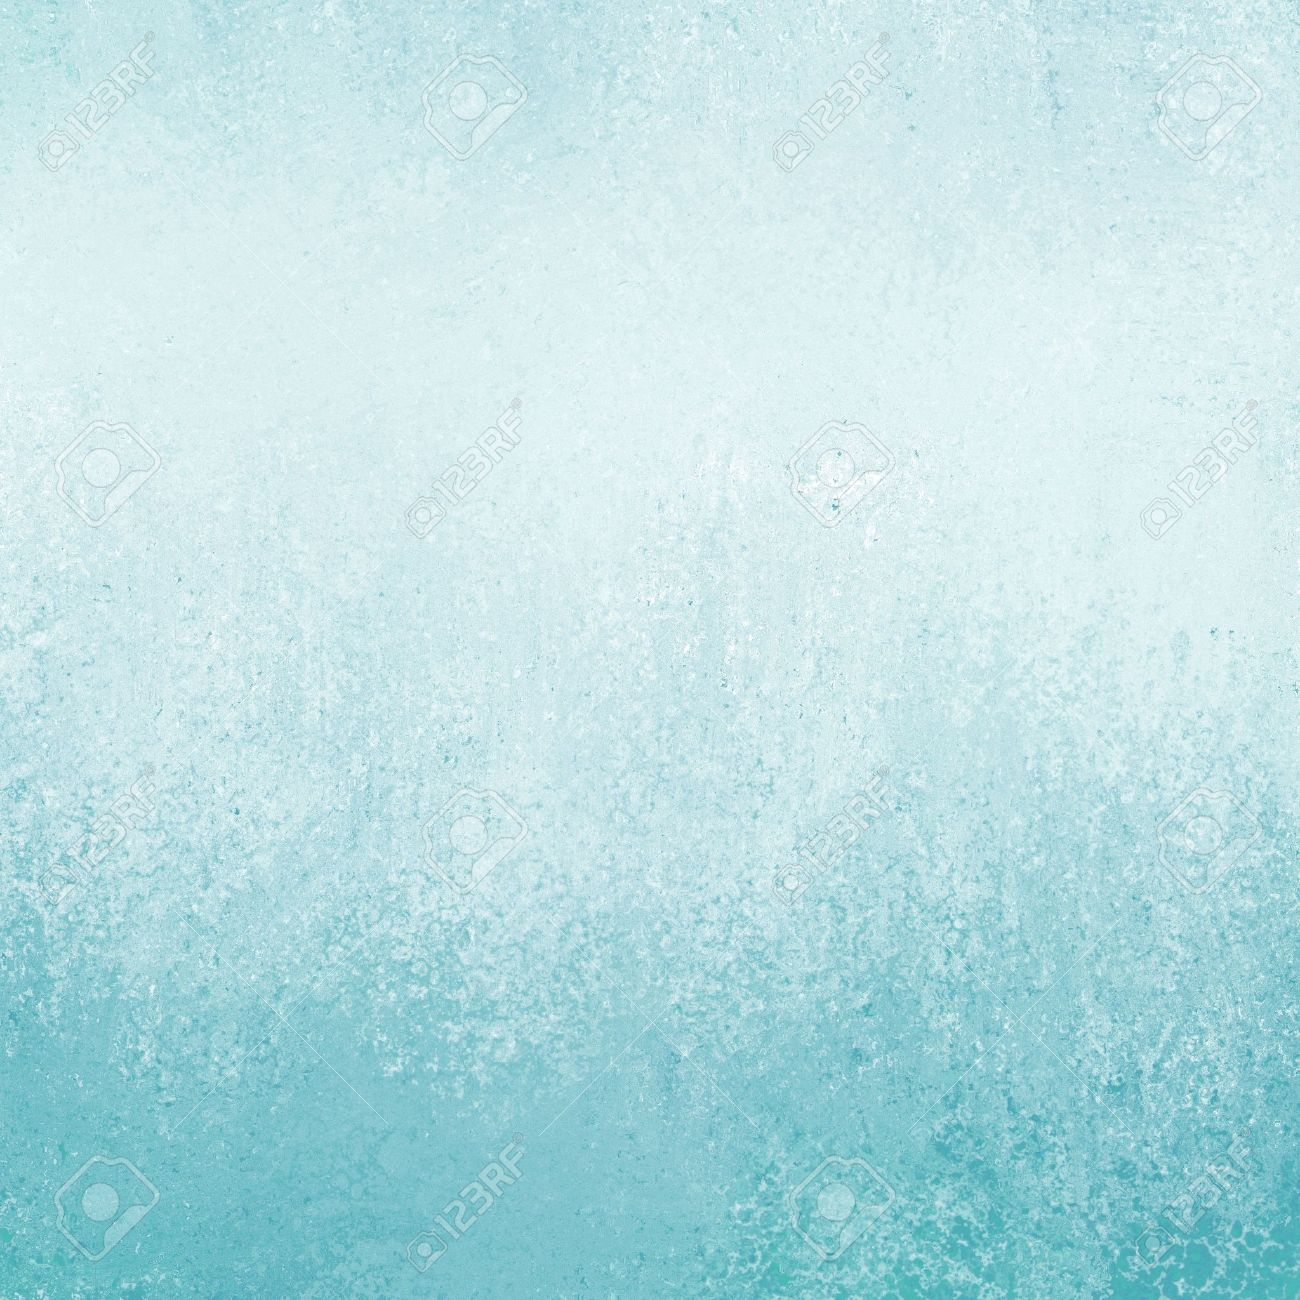 pastel blue background with texture and grunge border stock photo